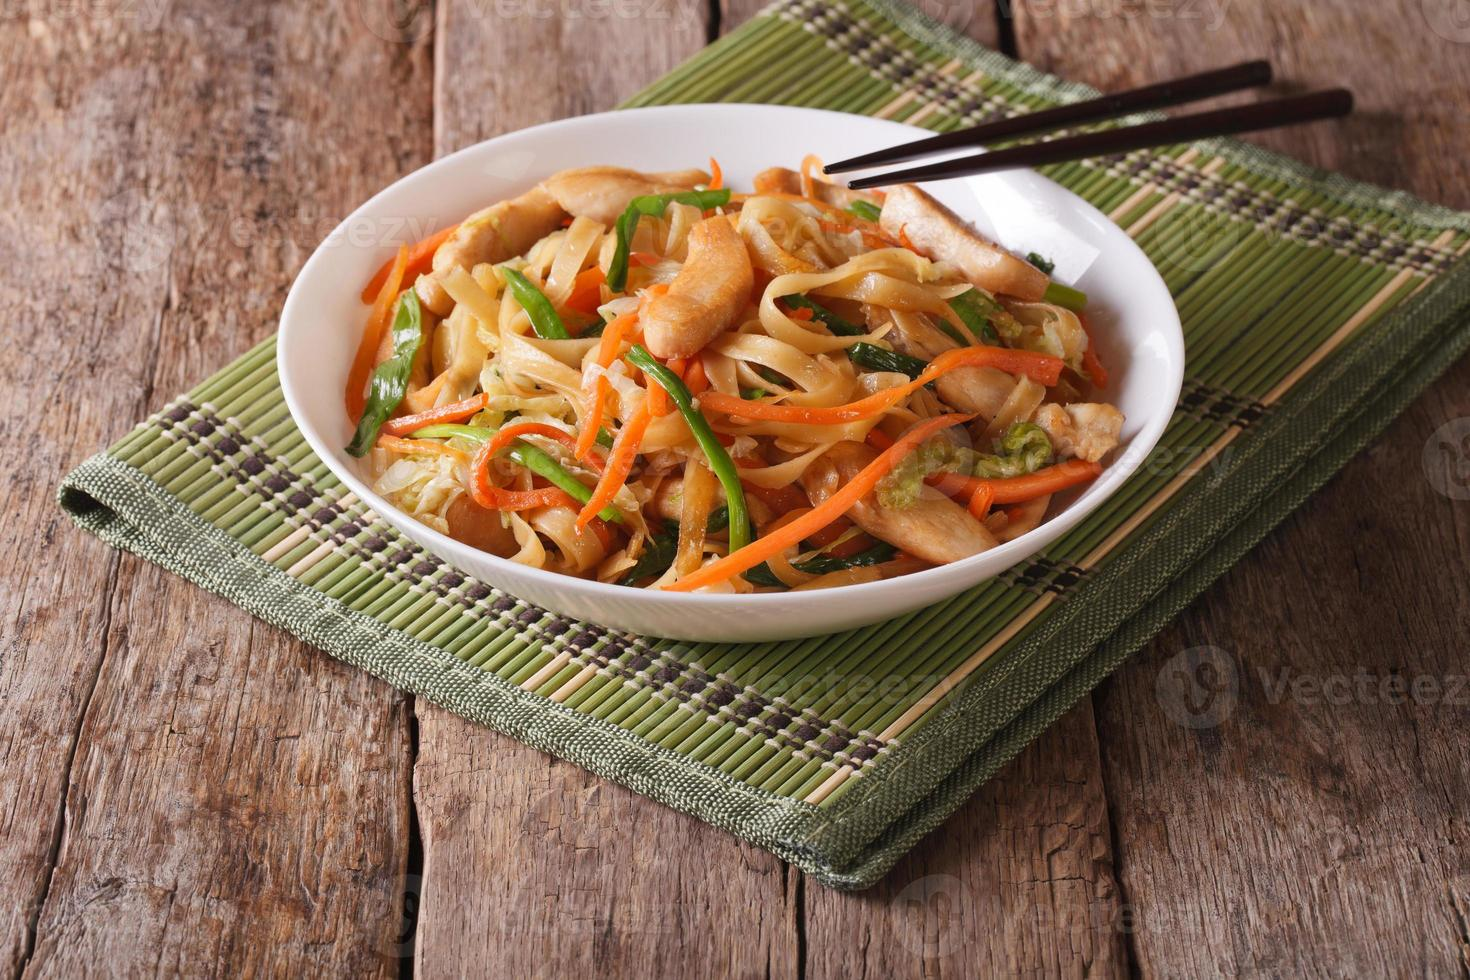 Chow mein with chicken and vegetables, horizontal photo